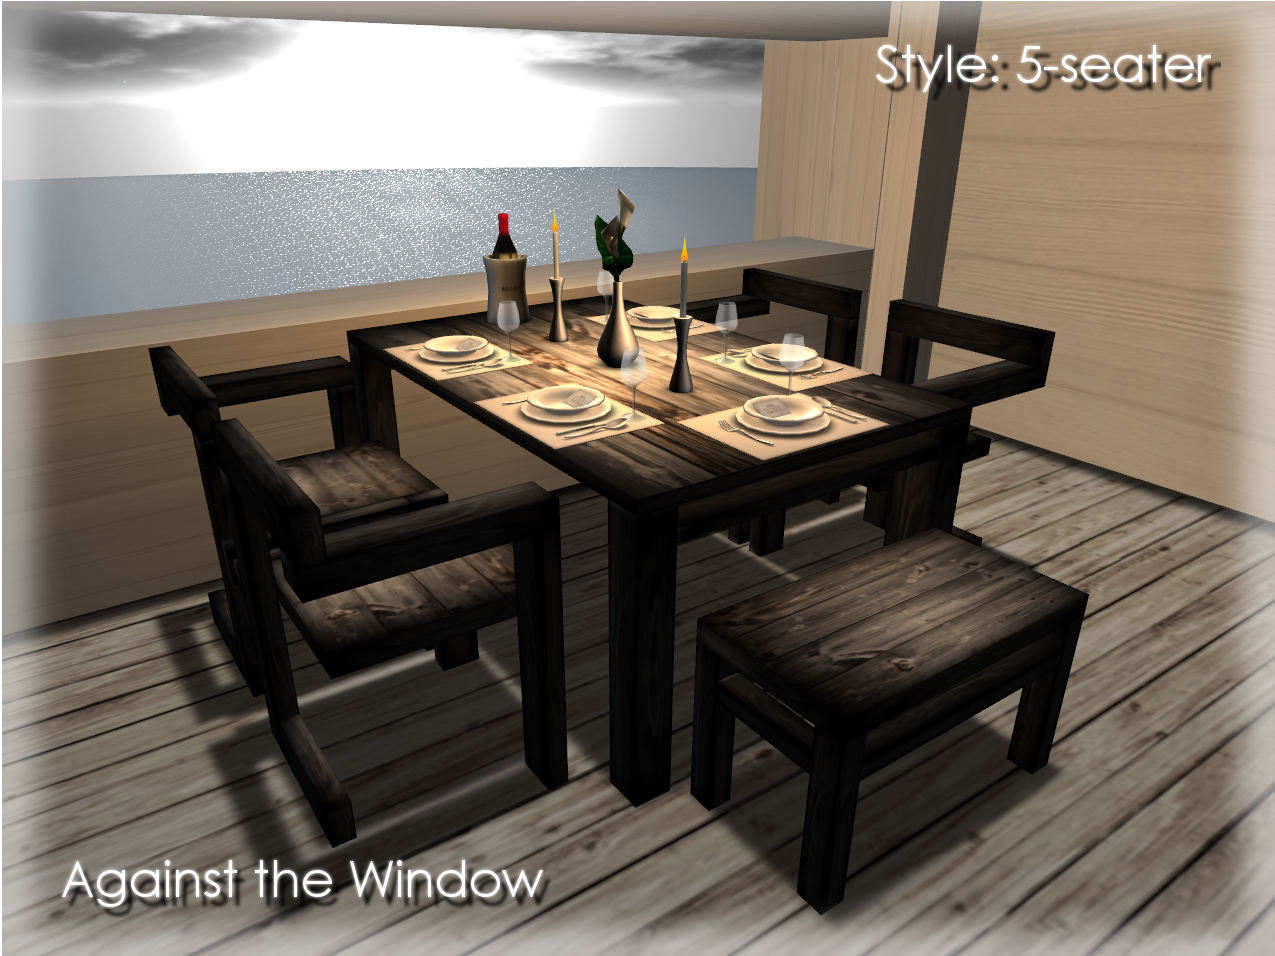 Elegant Dining Table Set Attach OBF Color Picker HUD default on Top left and click color palette You can freely pick up color like on Second Life edit